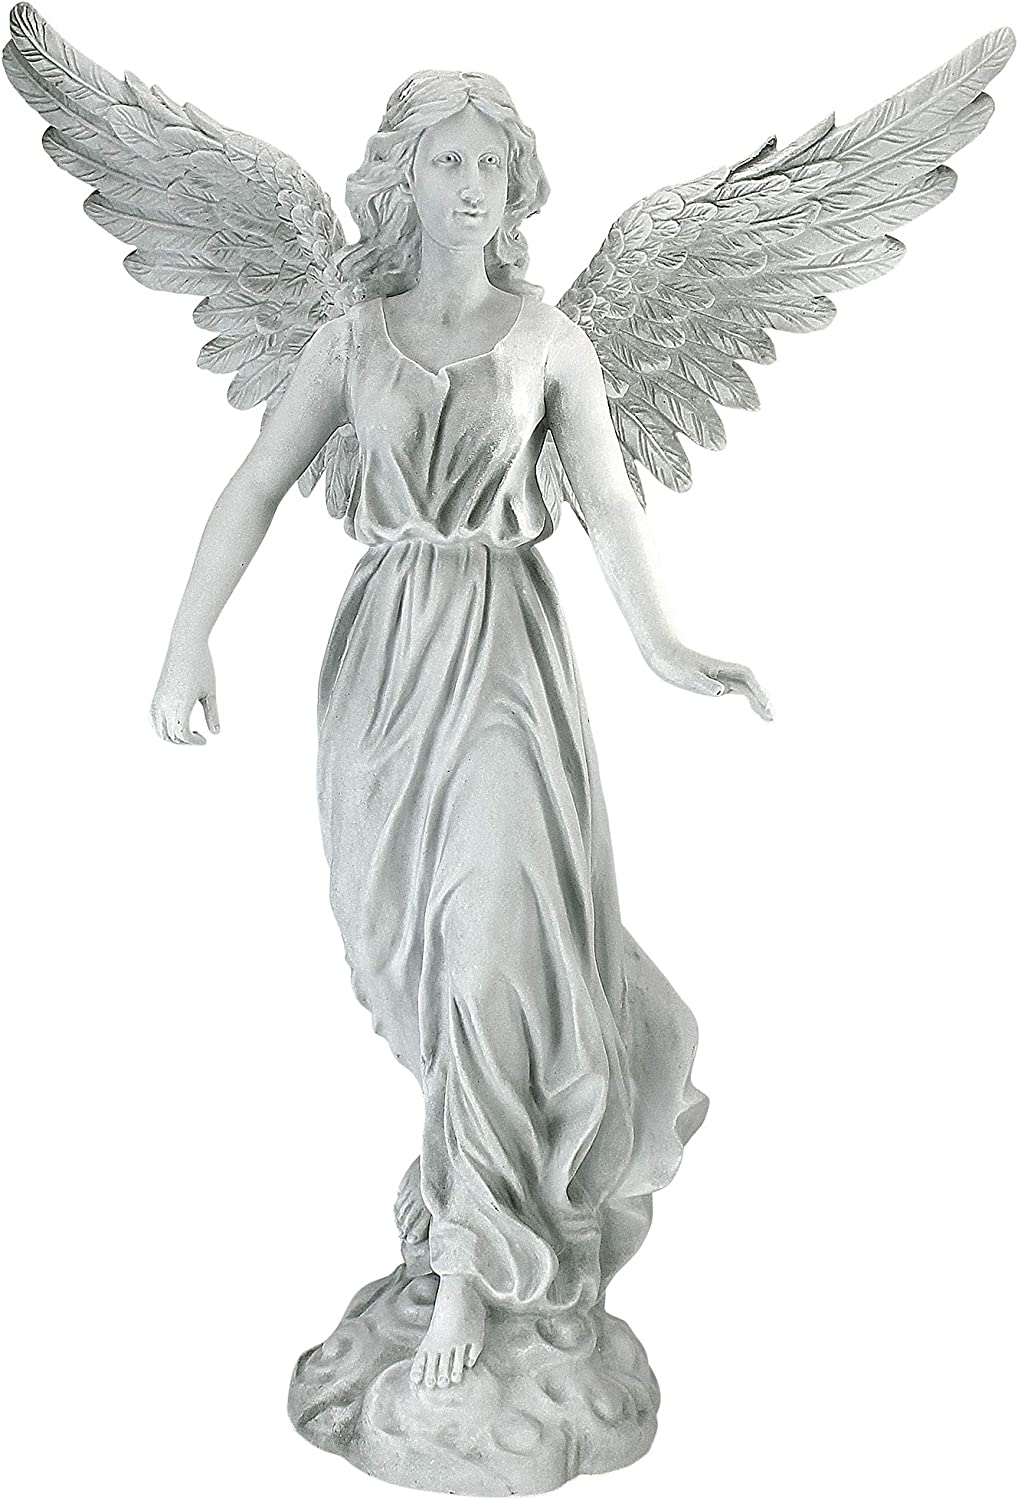 Design Limited time cheap sale Toscano Angel of Patience Medium Statue Polyre 21 Inch Austin Mall